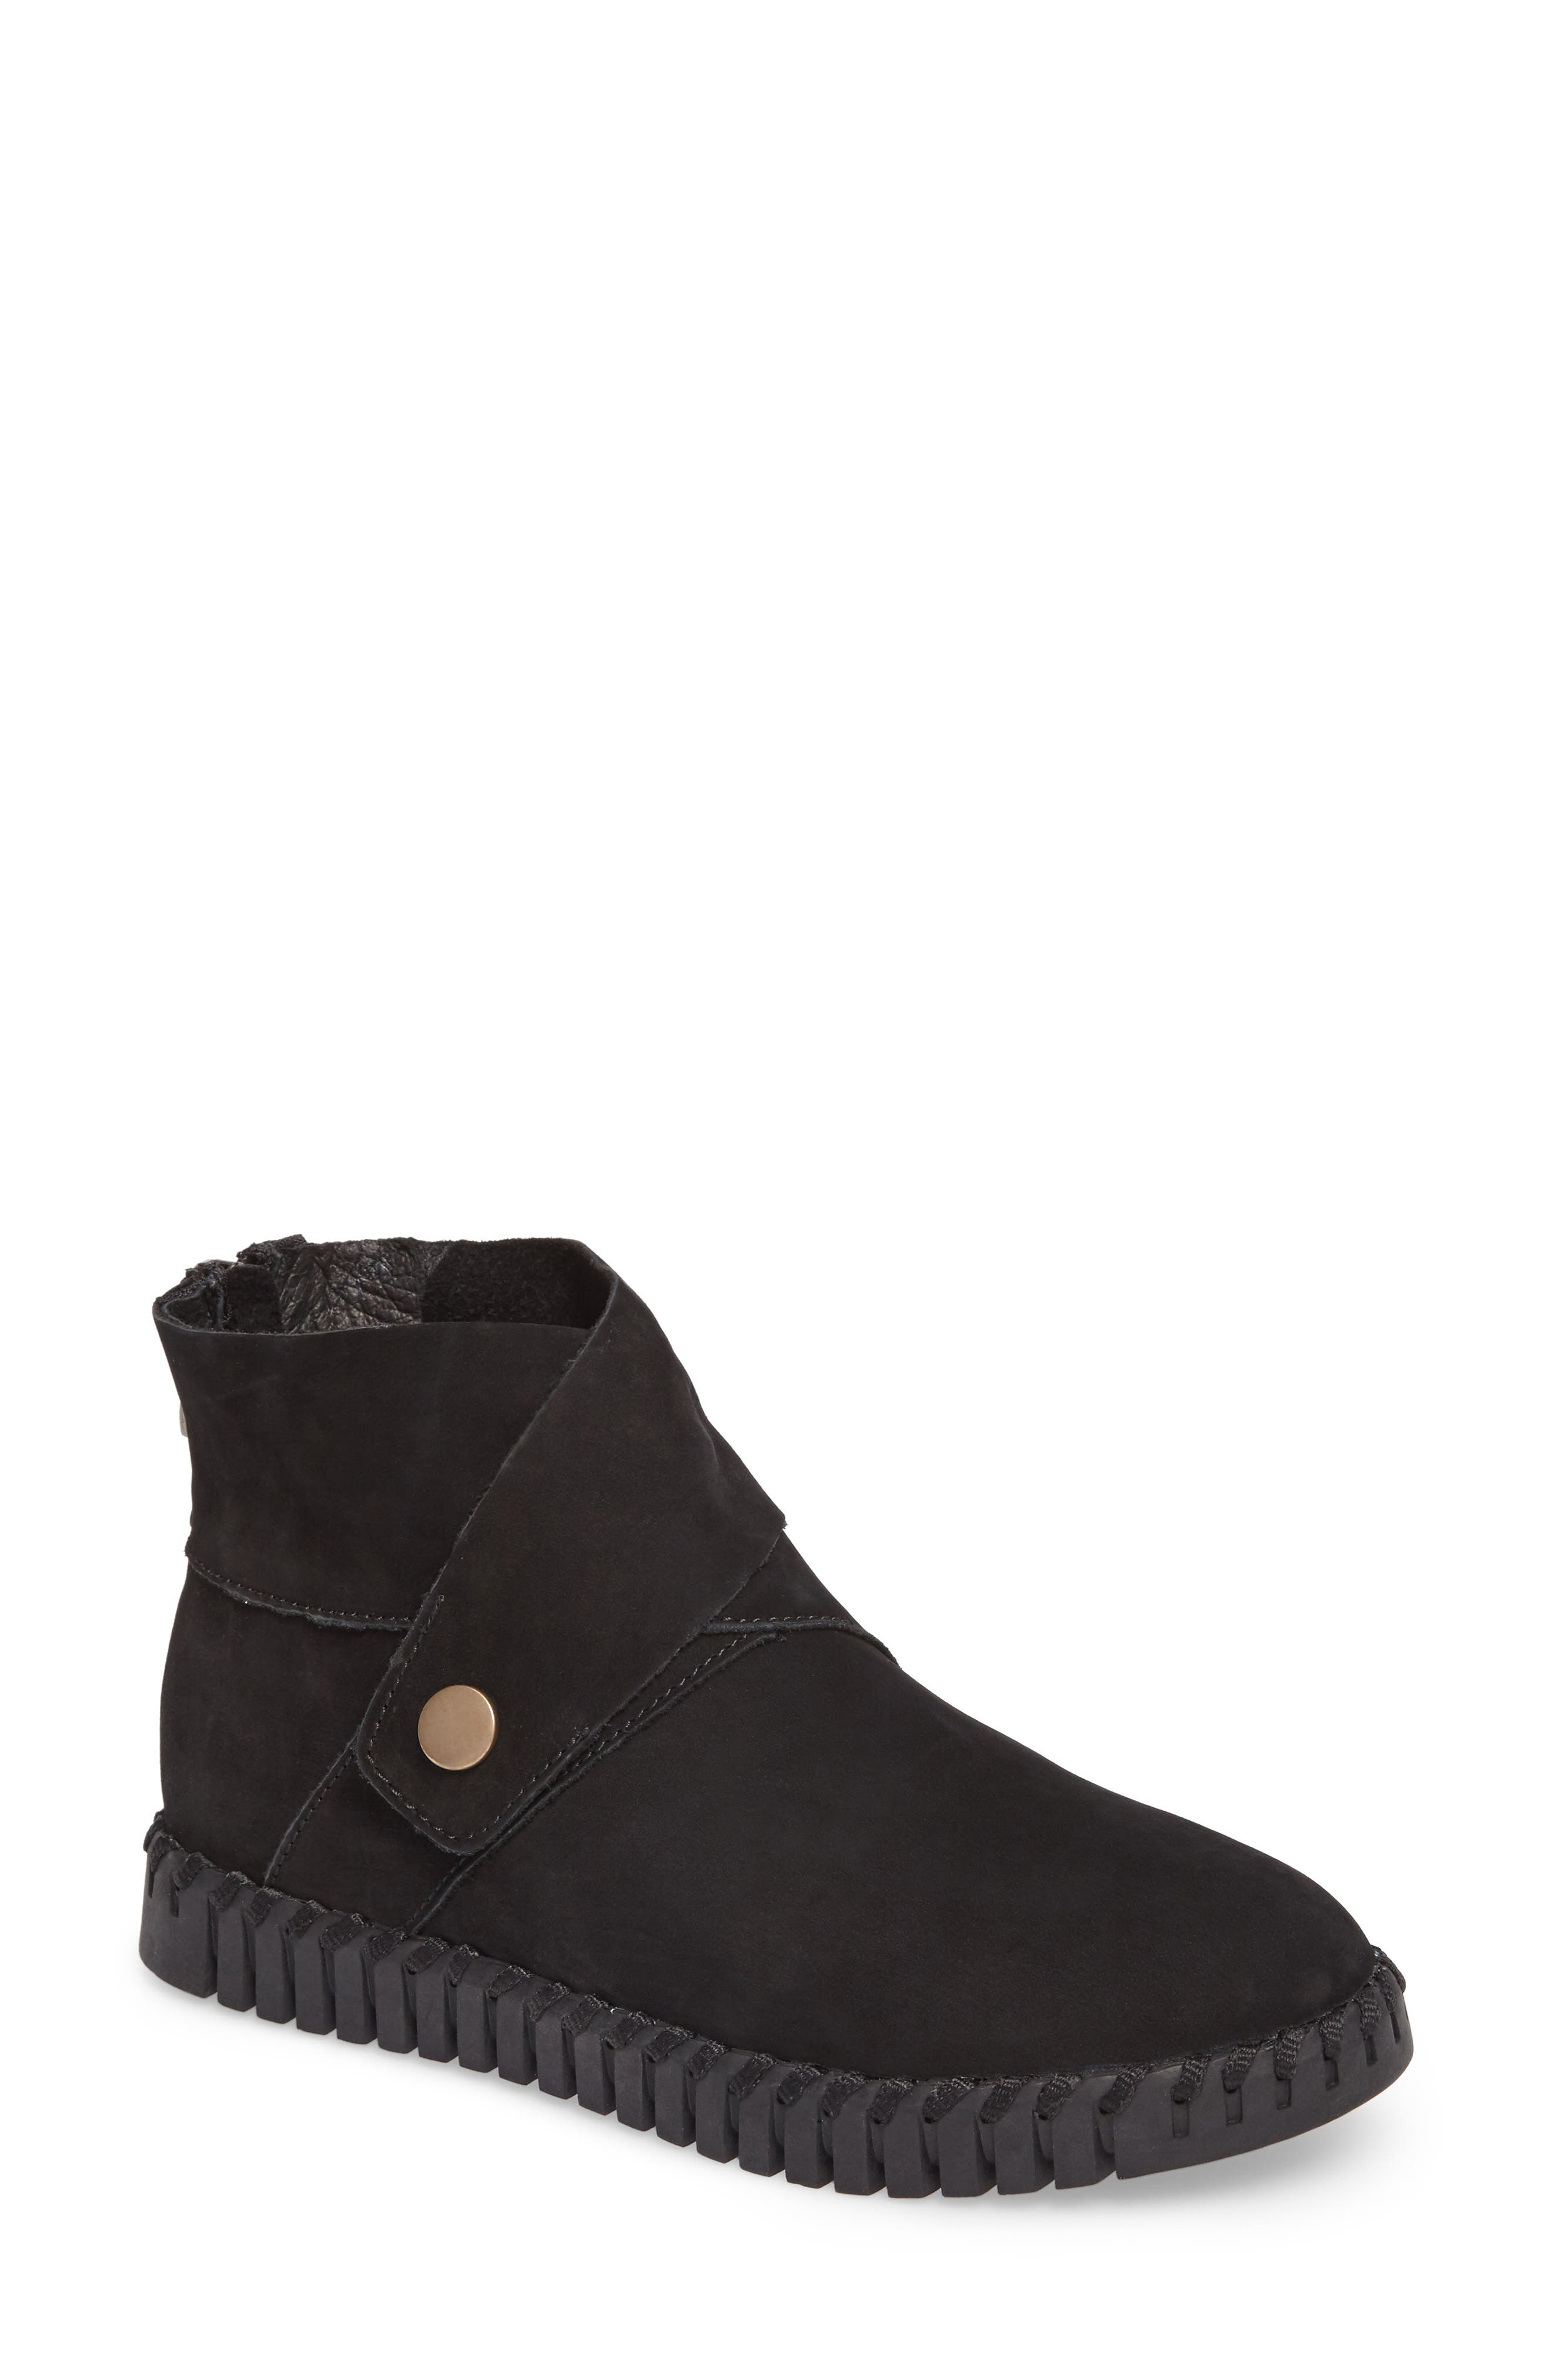 Bernie Mev TW69 Bootie,                         Main,                         color, 001